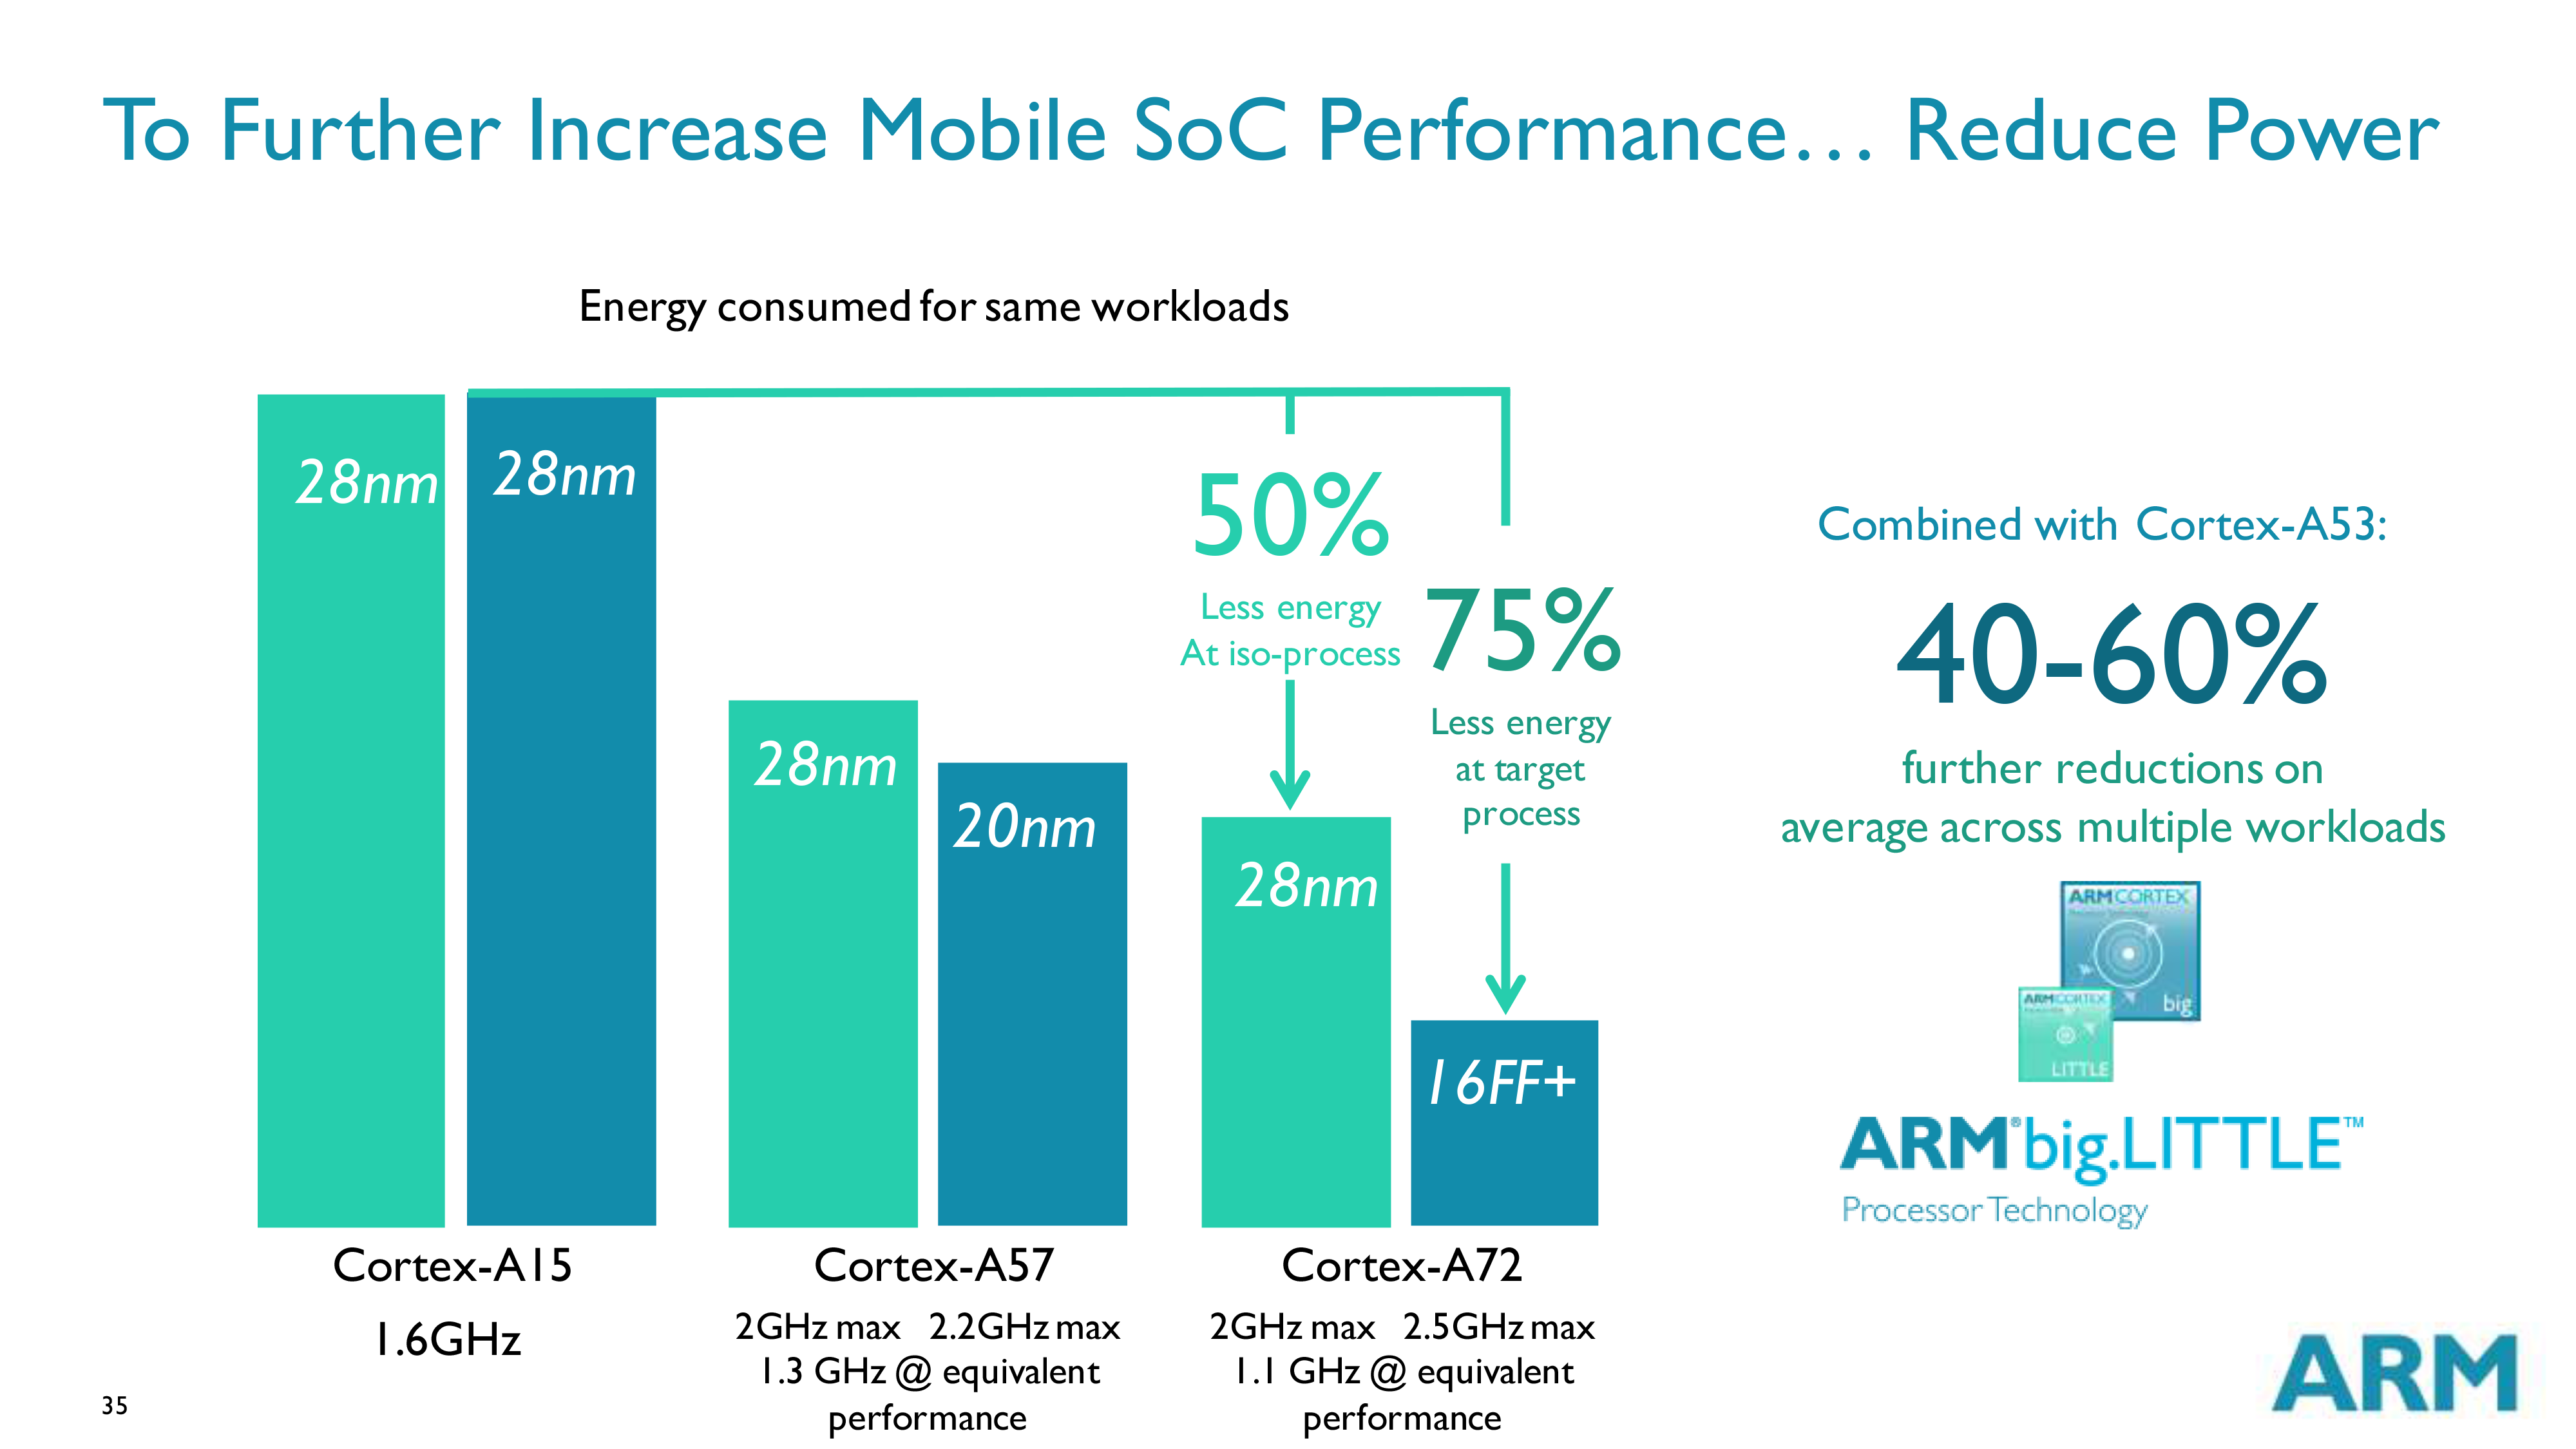 Cortex A72 relative power consumption, versus A15 and A57 at current- and next-gen process nodes.